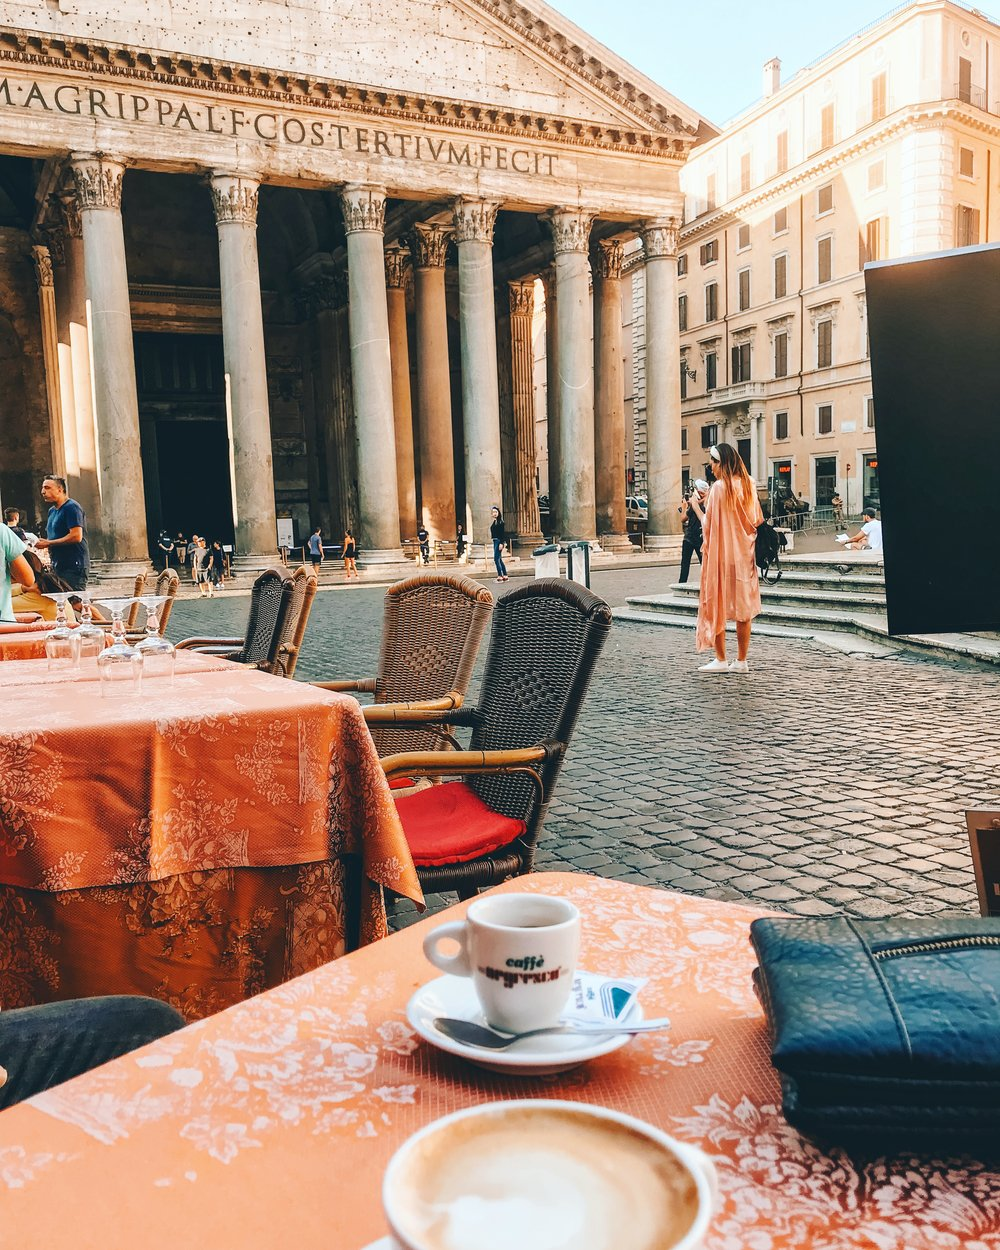 Caffe latte with a side of Pantheon